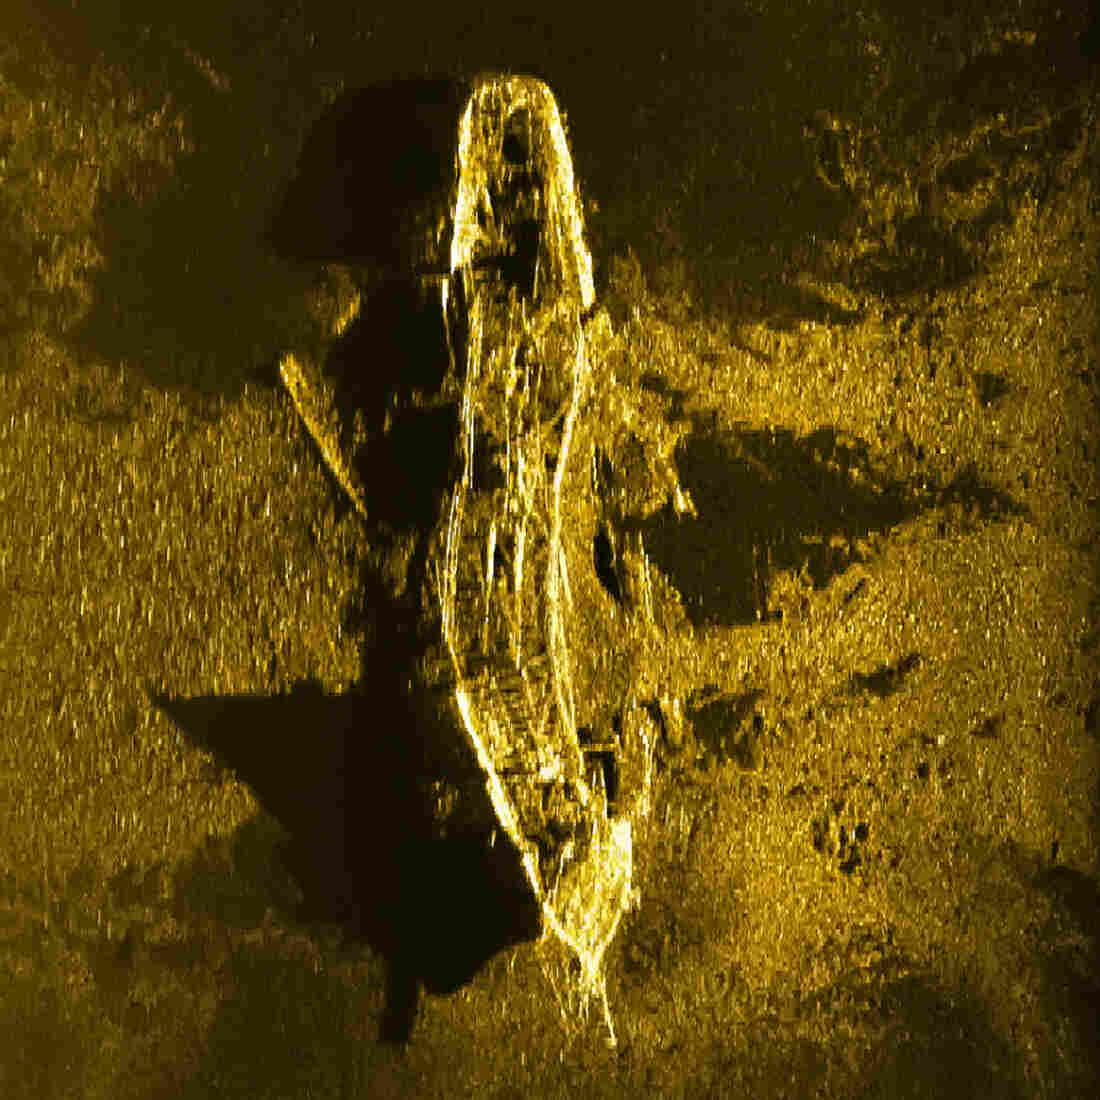 Search for MH370 leads researchers to 19th century merchant vessels